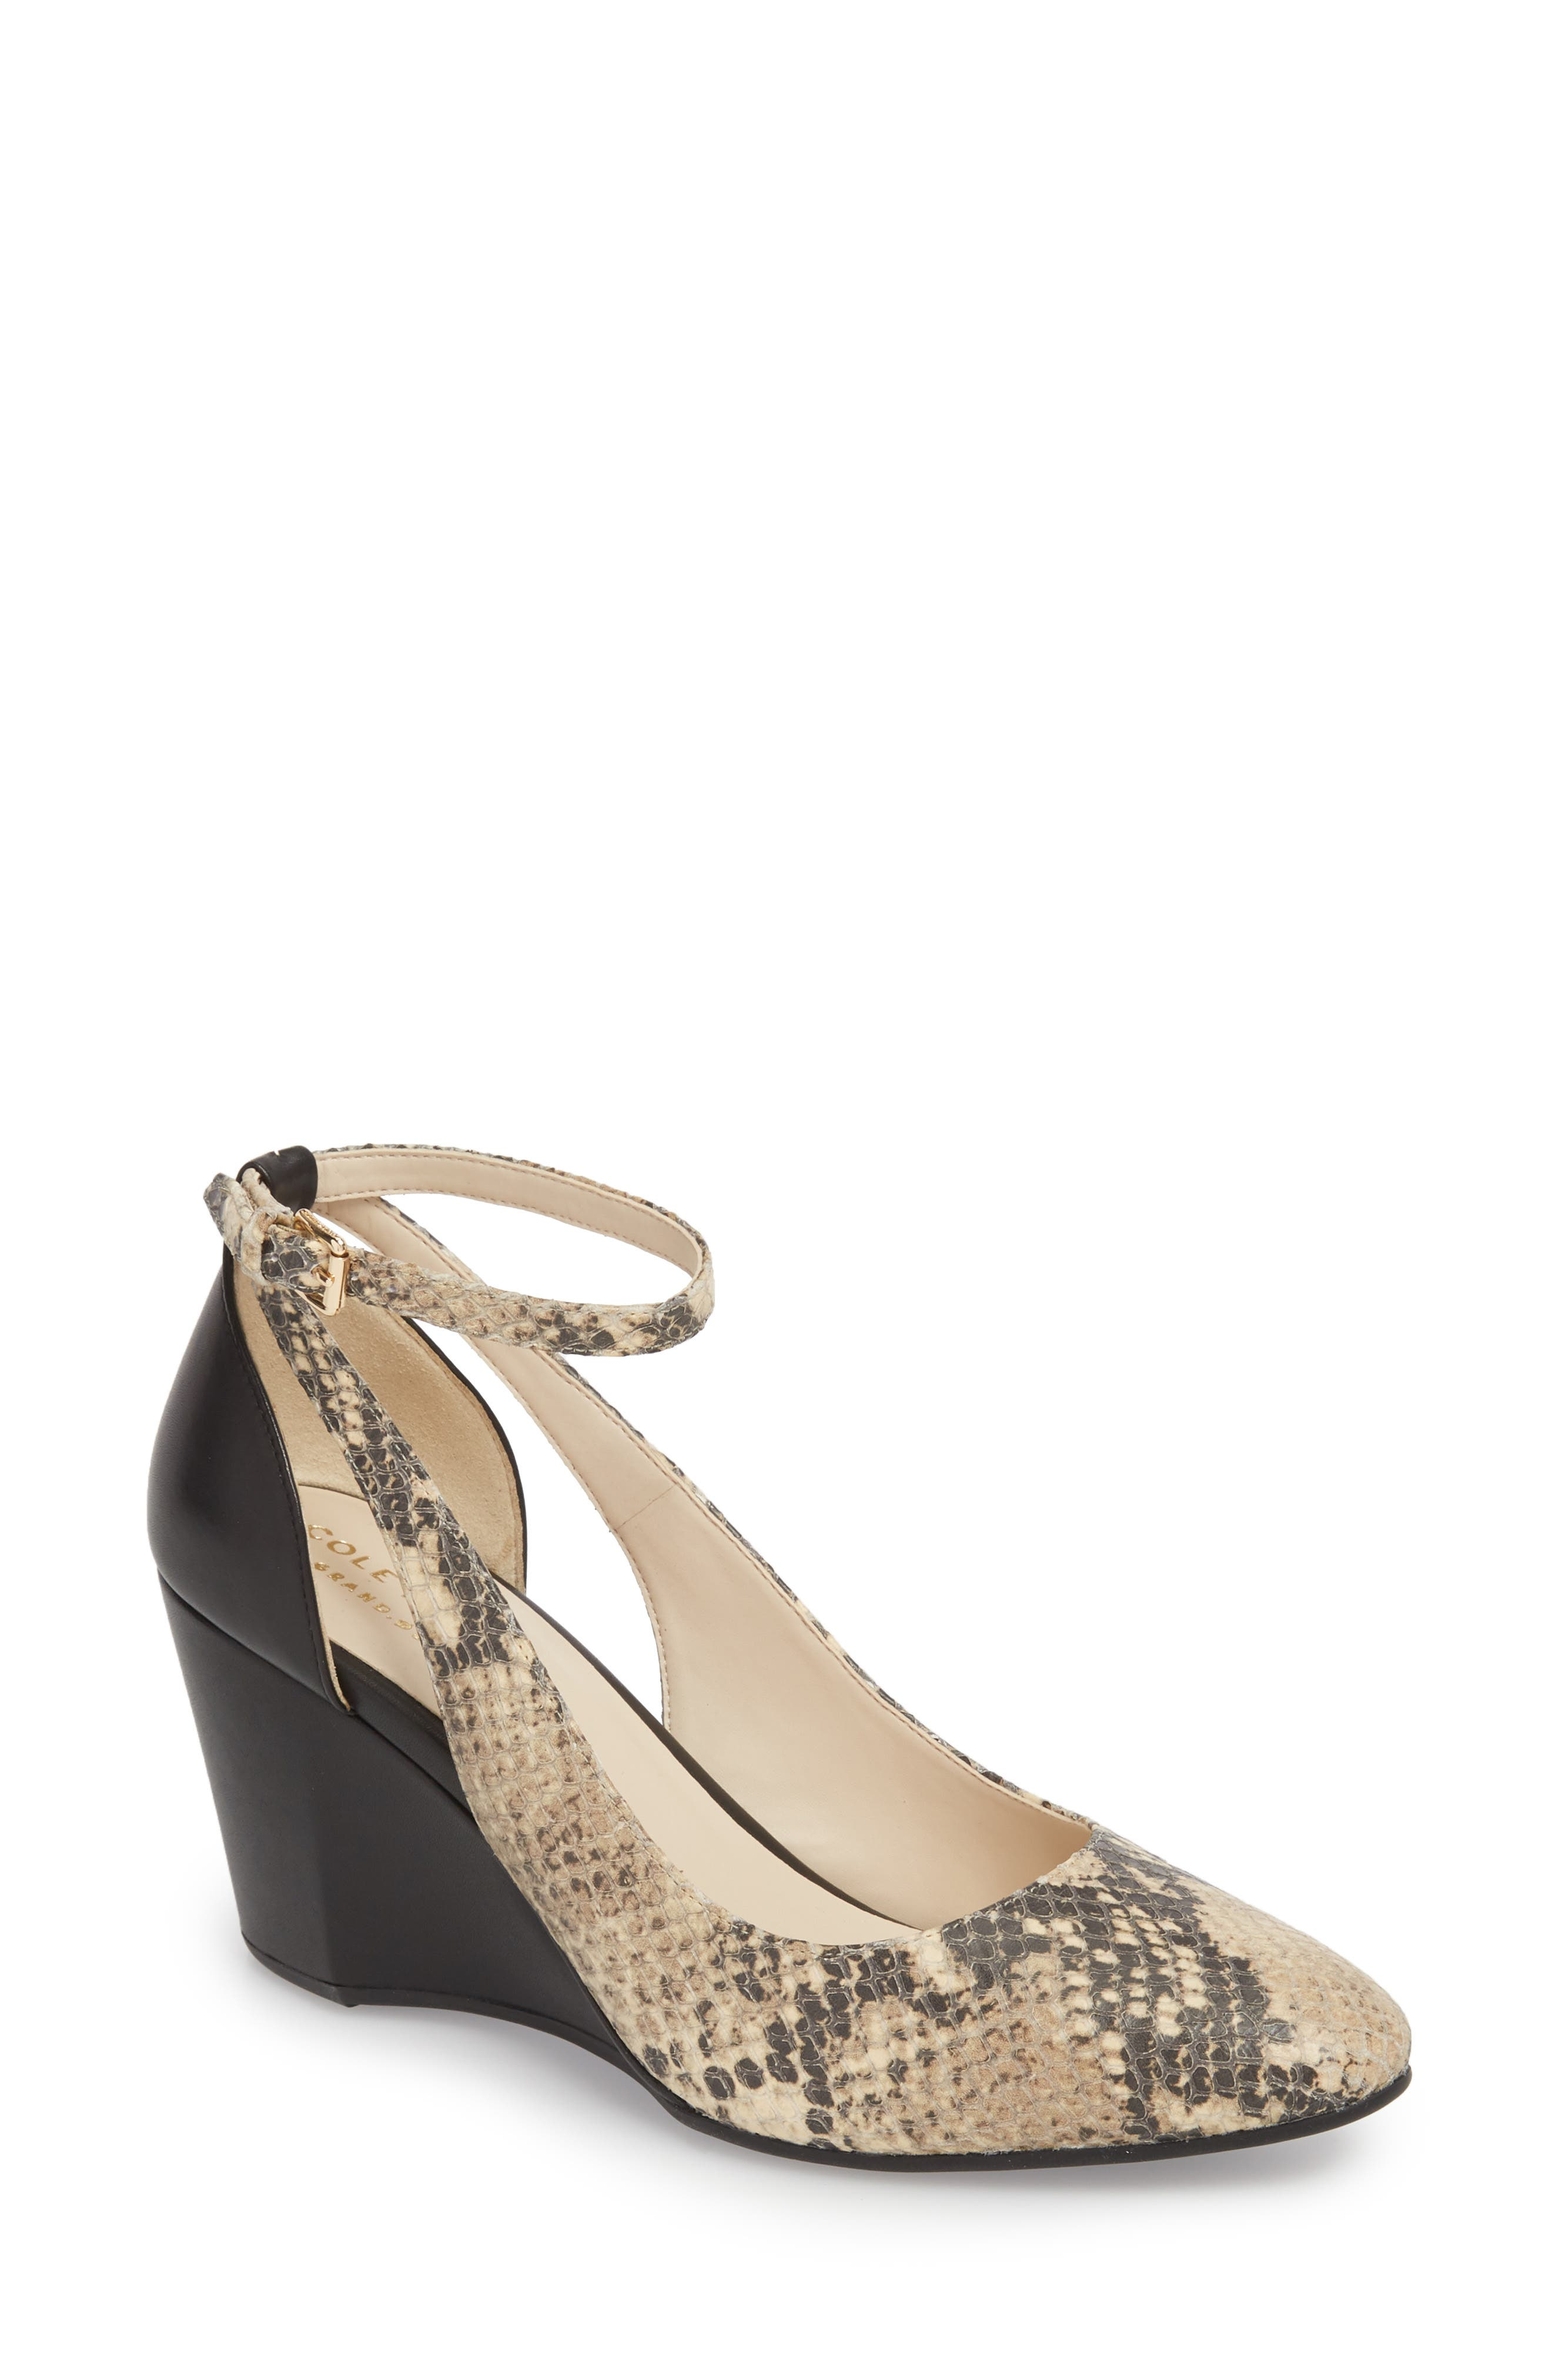 Lacey Cutout Wedge Pump in Snake Print Leather